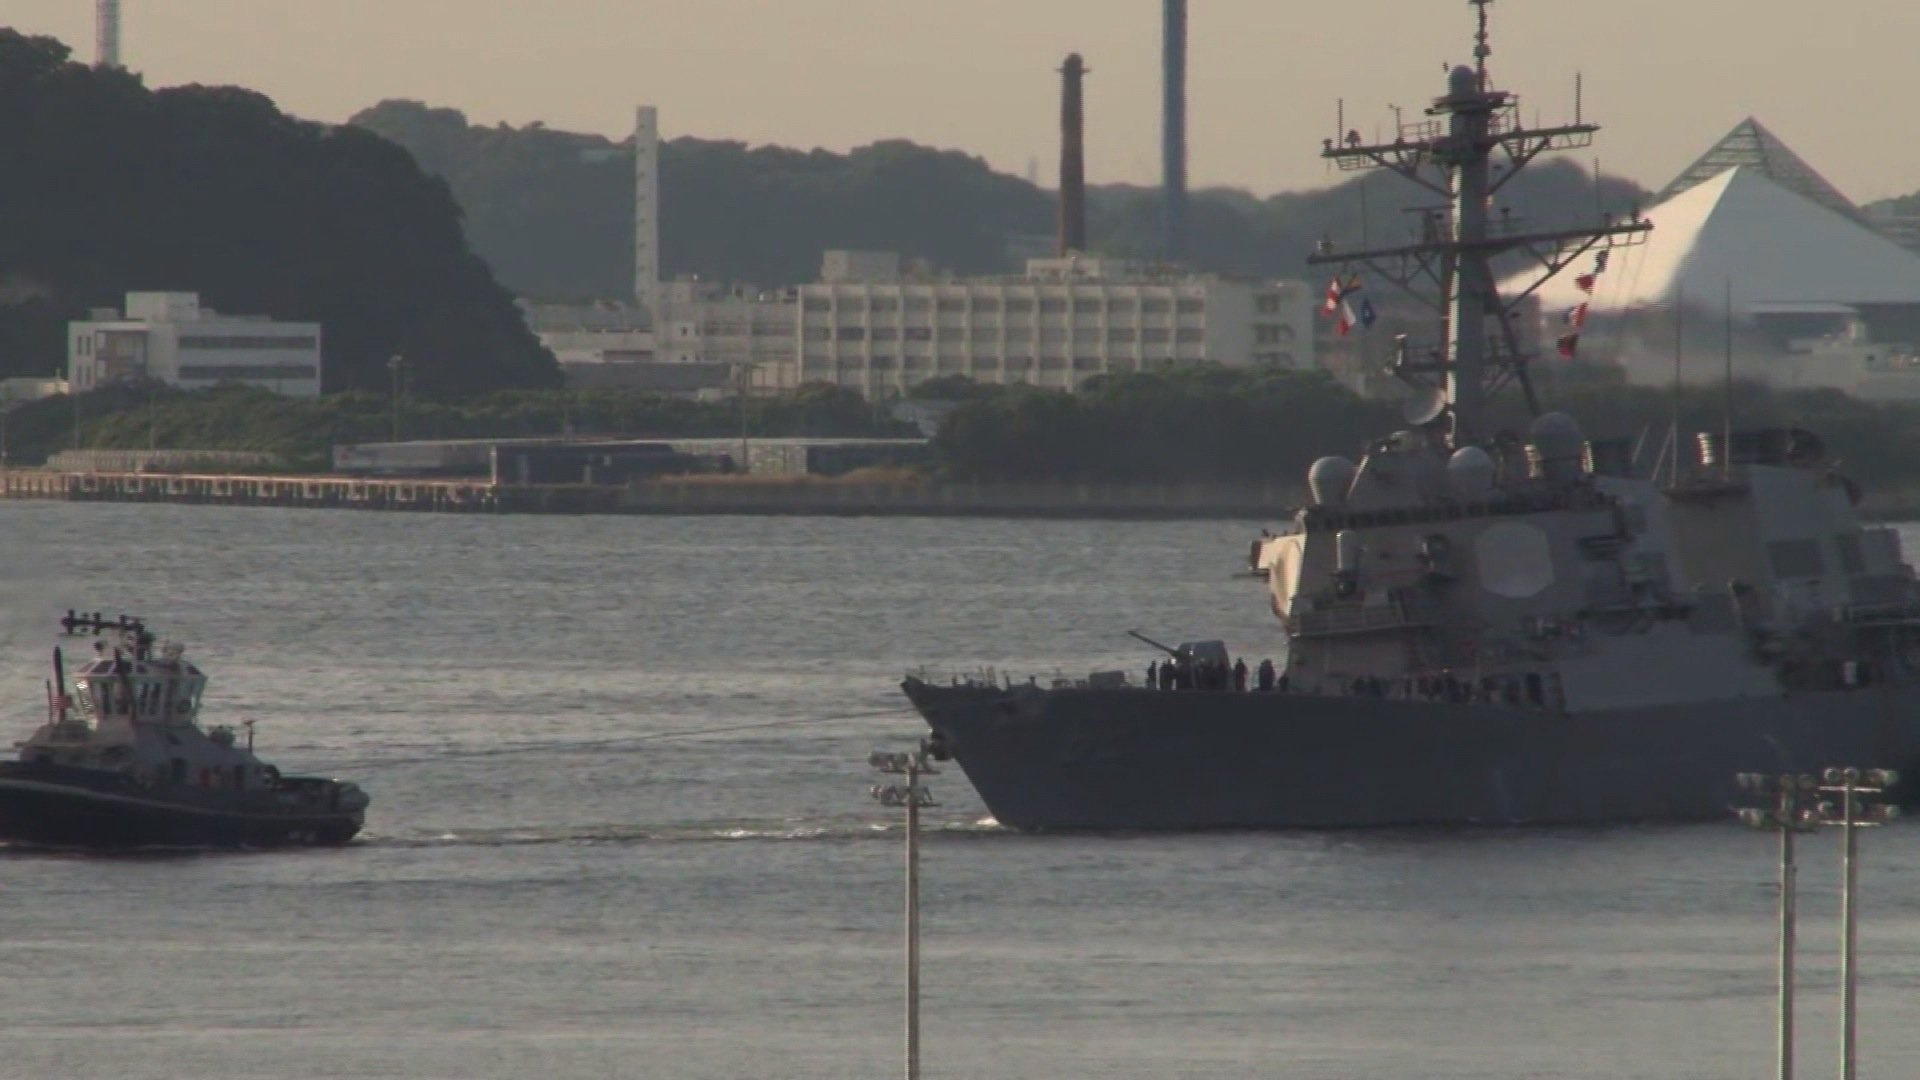 The damaged USS Fitzgerald is being towed by a tugboat in the waters near the U.S. Naval base in Yokosuka.